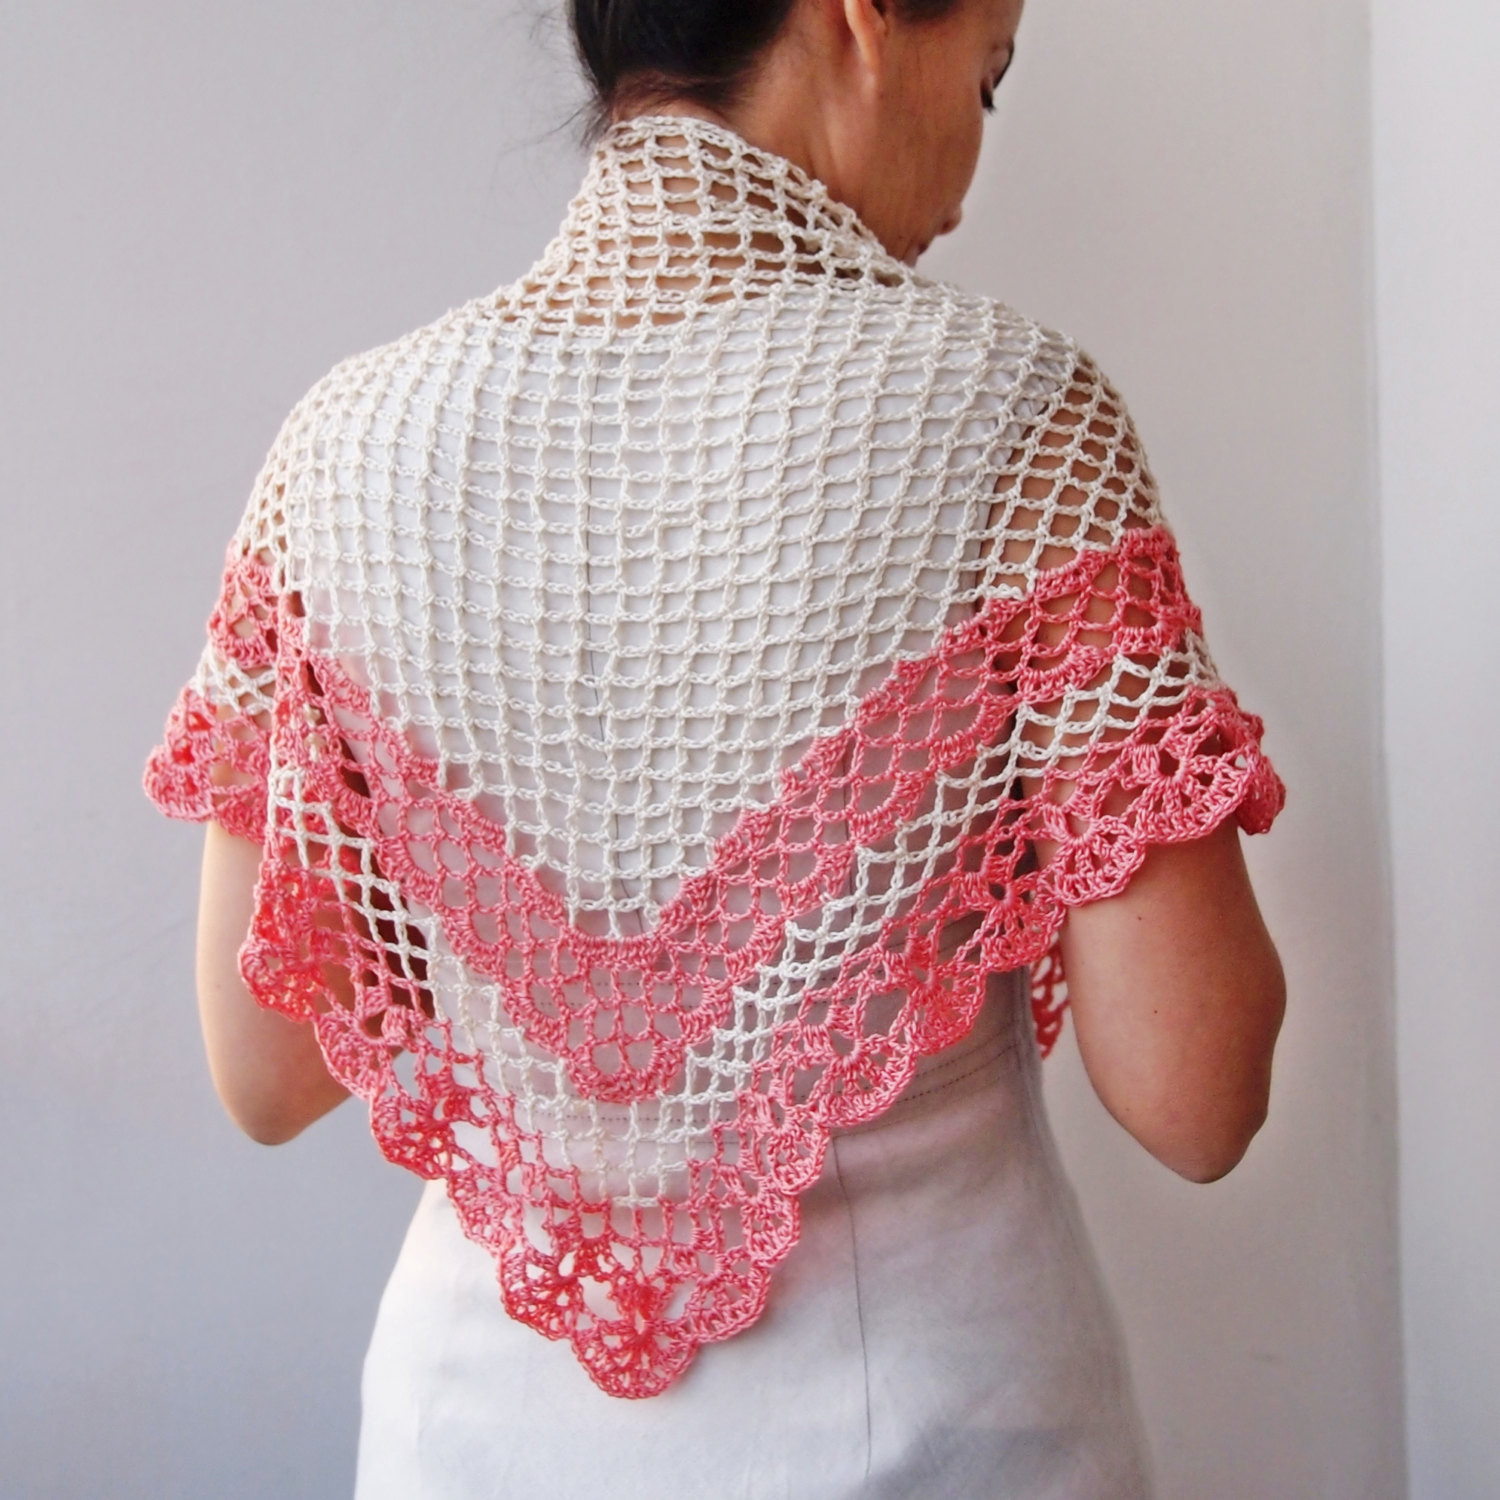 Crochet pattern shawl women triangle shawl crochet lace